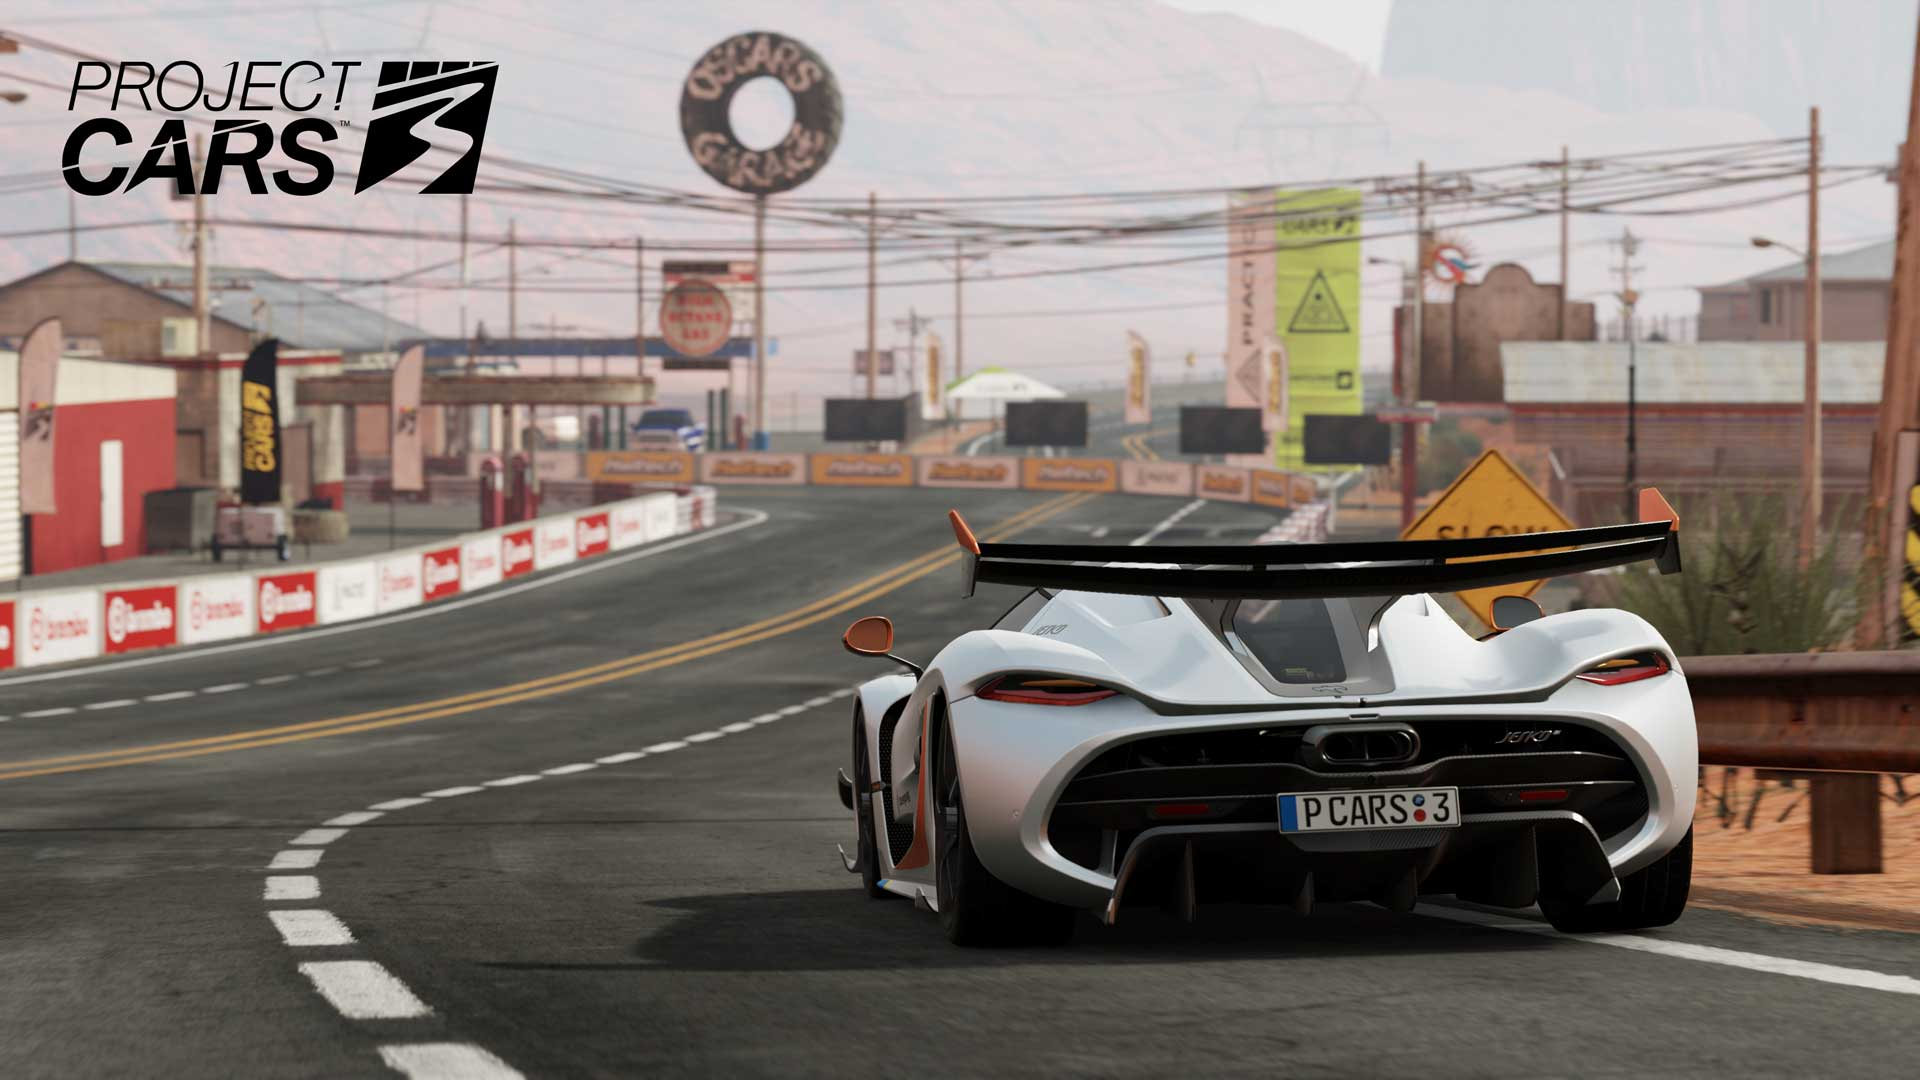 Les Alpinistes Project Cars 3 Corvette Honda 2 | Project Cars 3: Alpine A110S et GT4 au programme